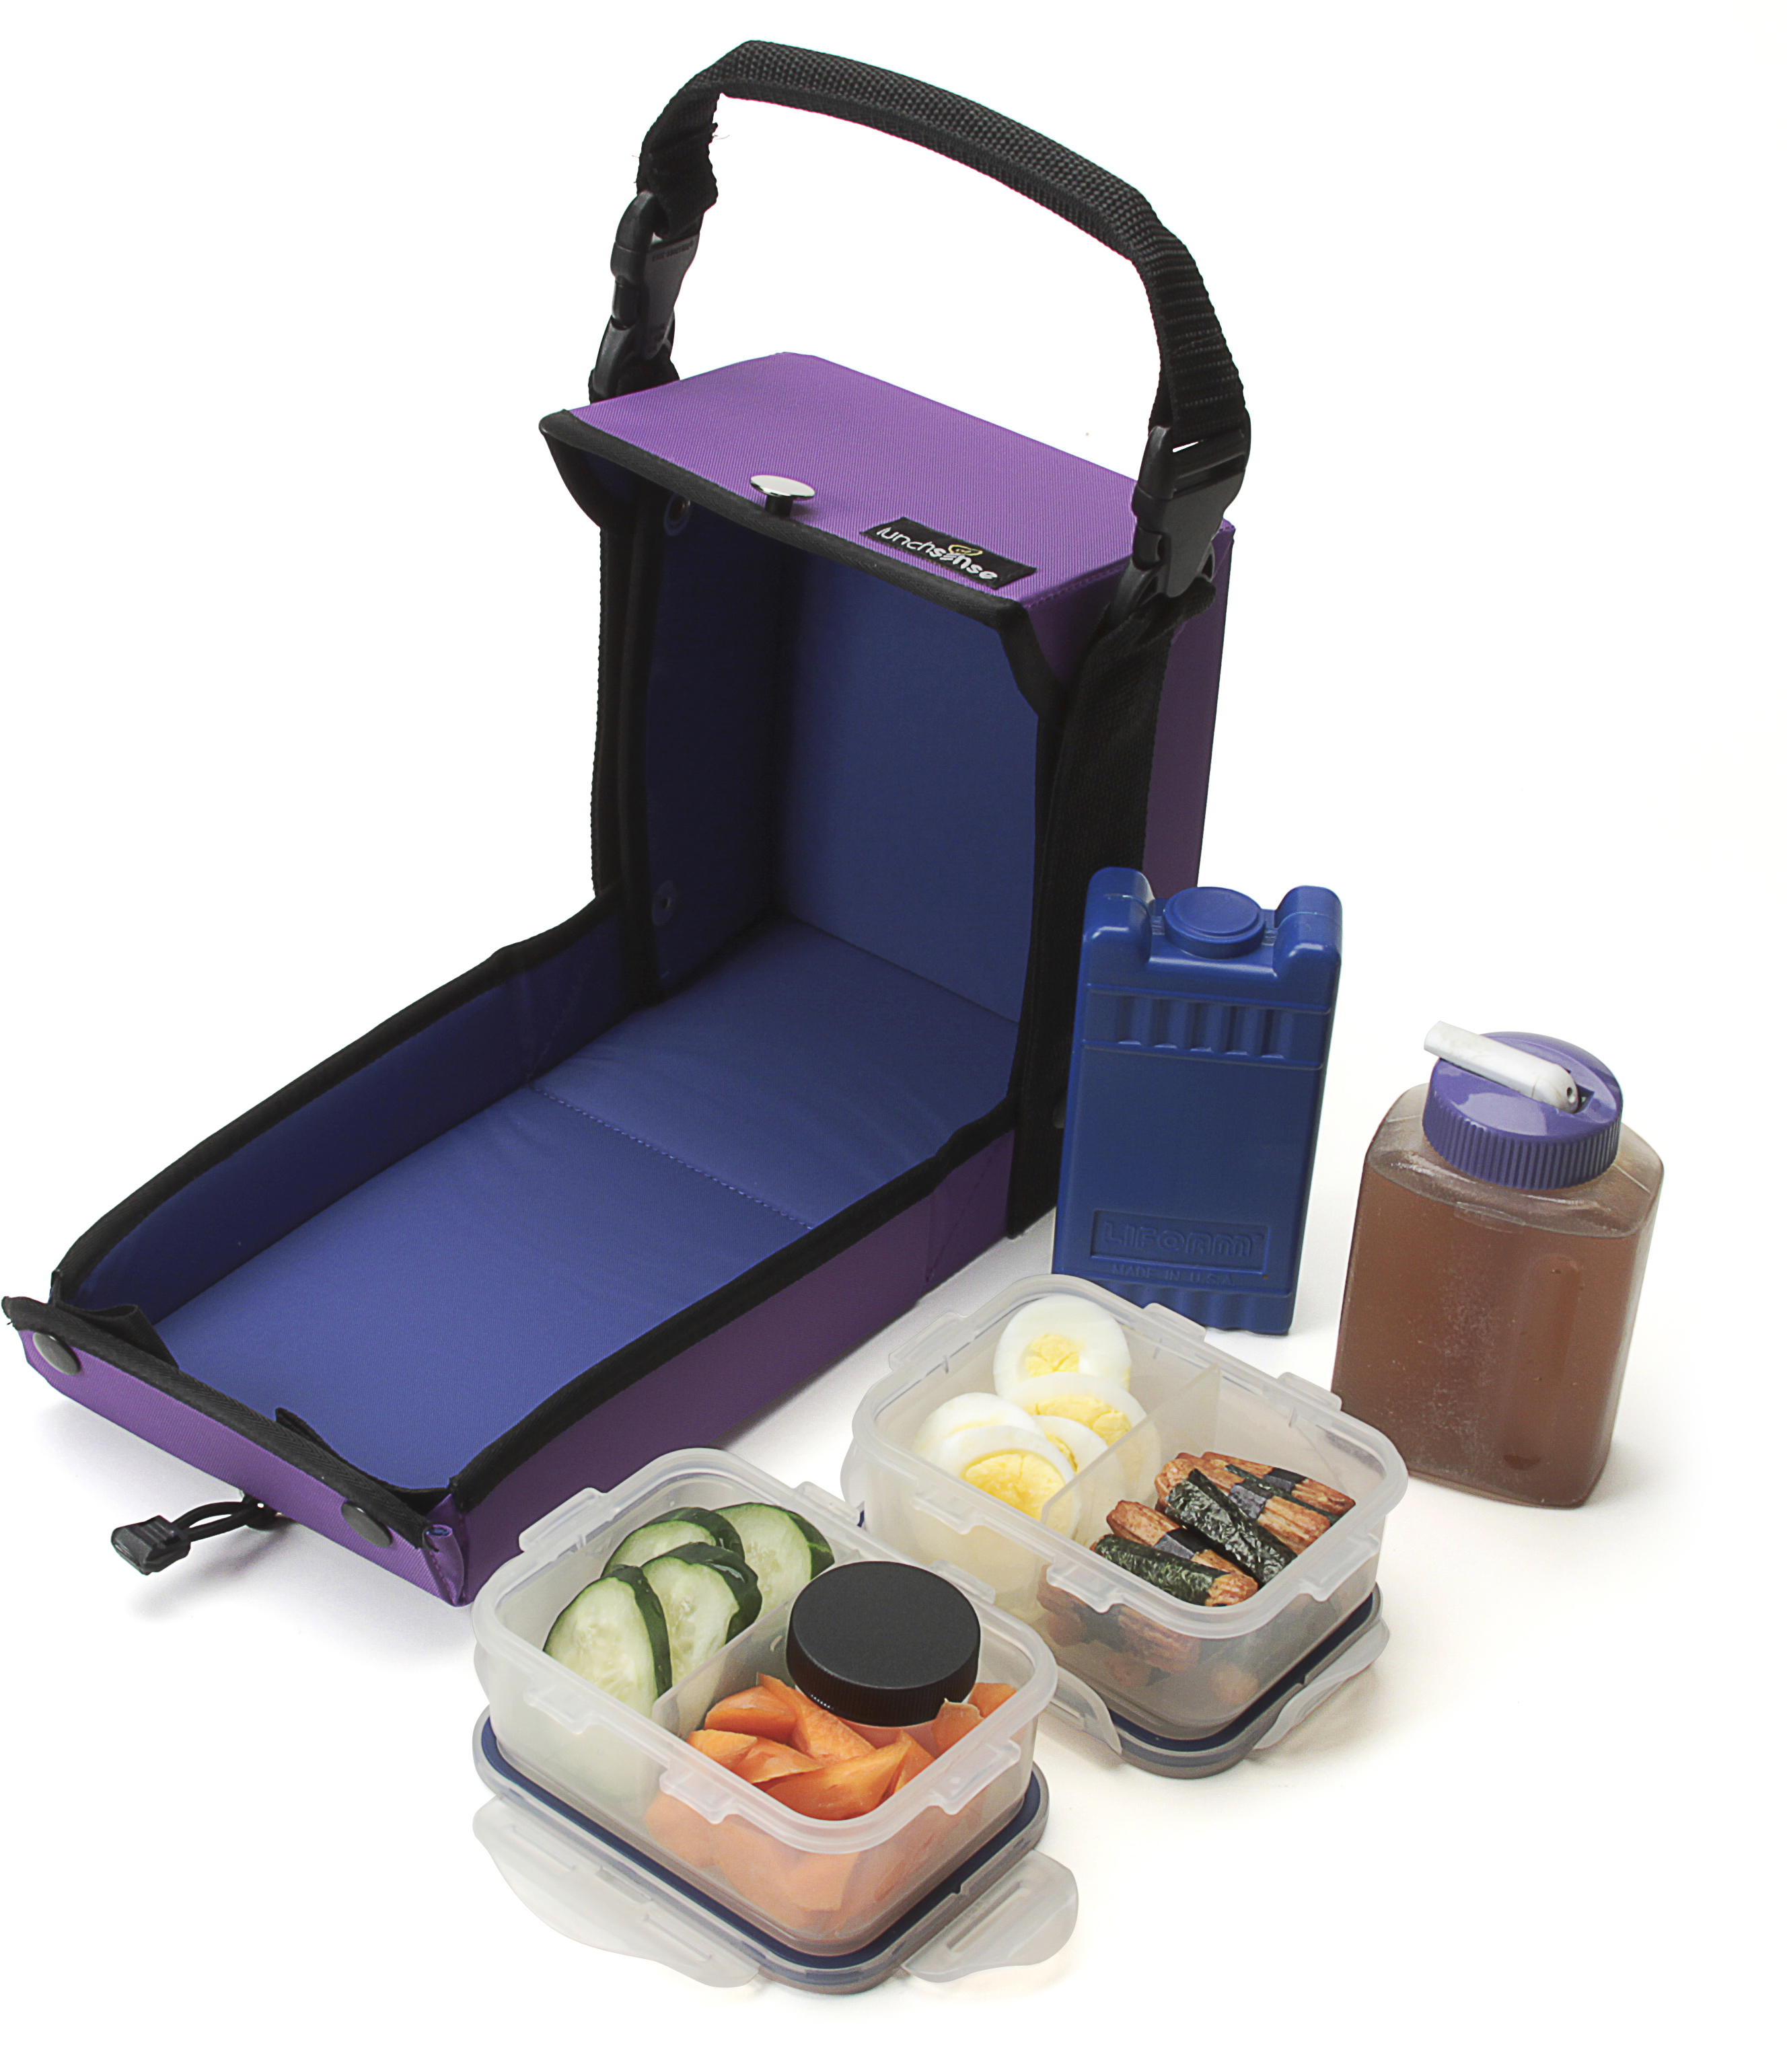 LunchSense Large Lunch Box W/ Food Storage Container Sets - Purple at Sears.com